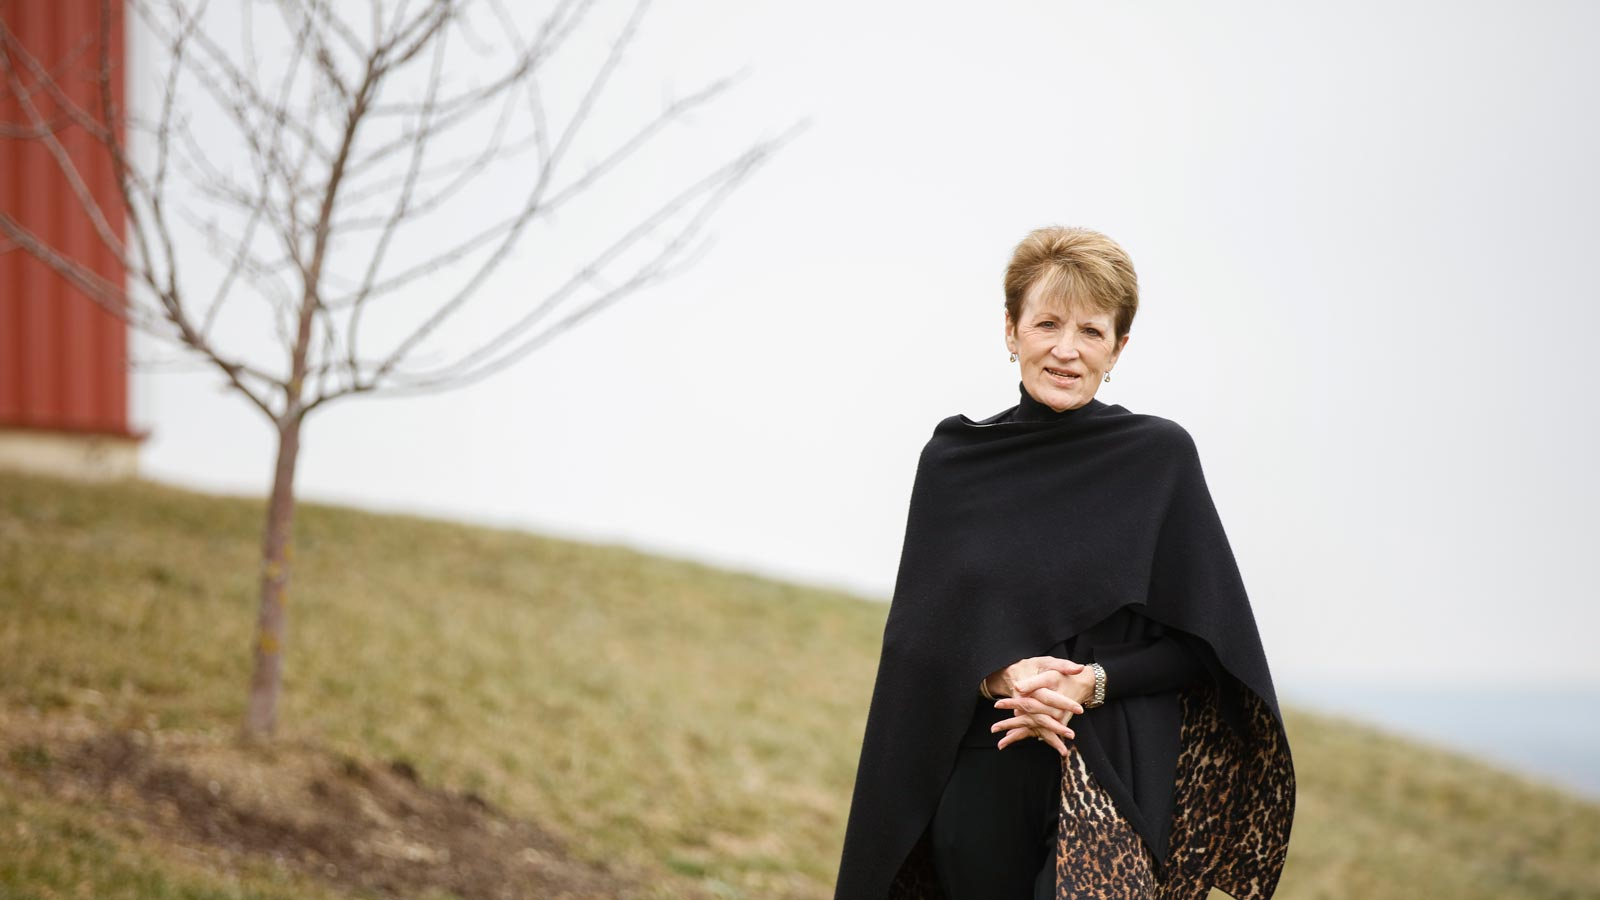 Shirley Mullen standing next to the Equestrian Center at Houghton College